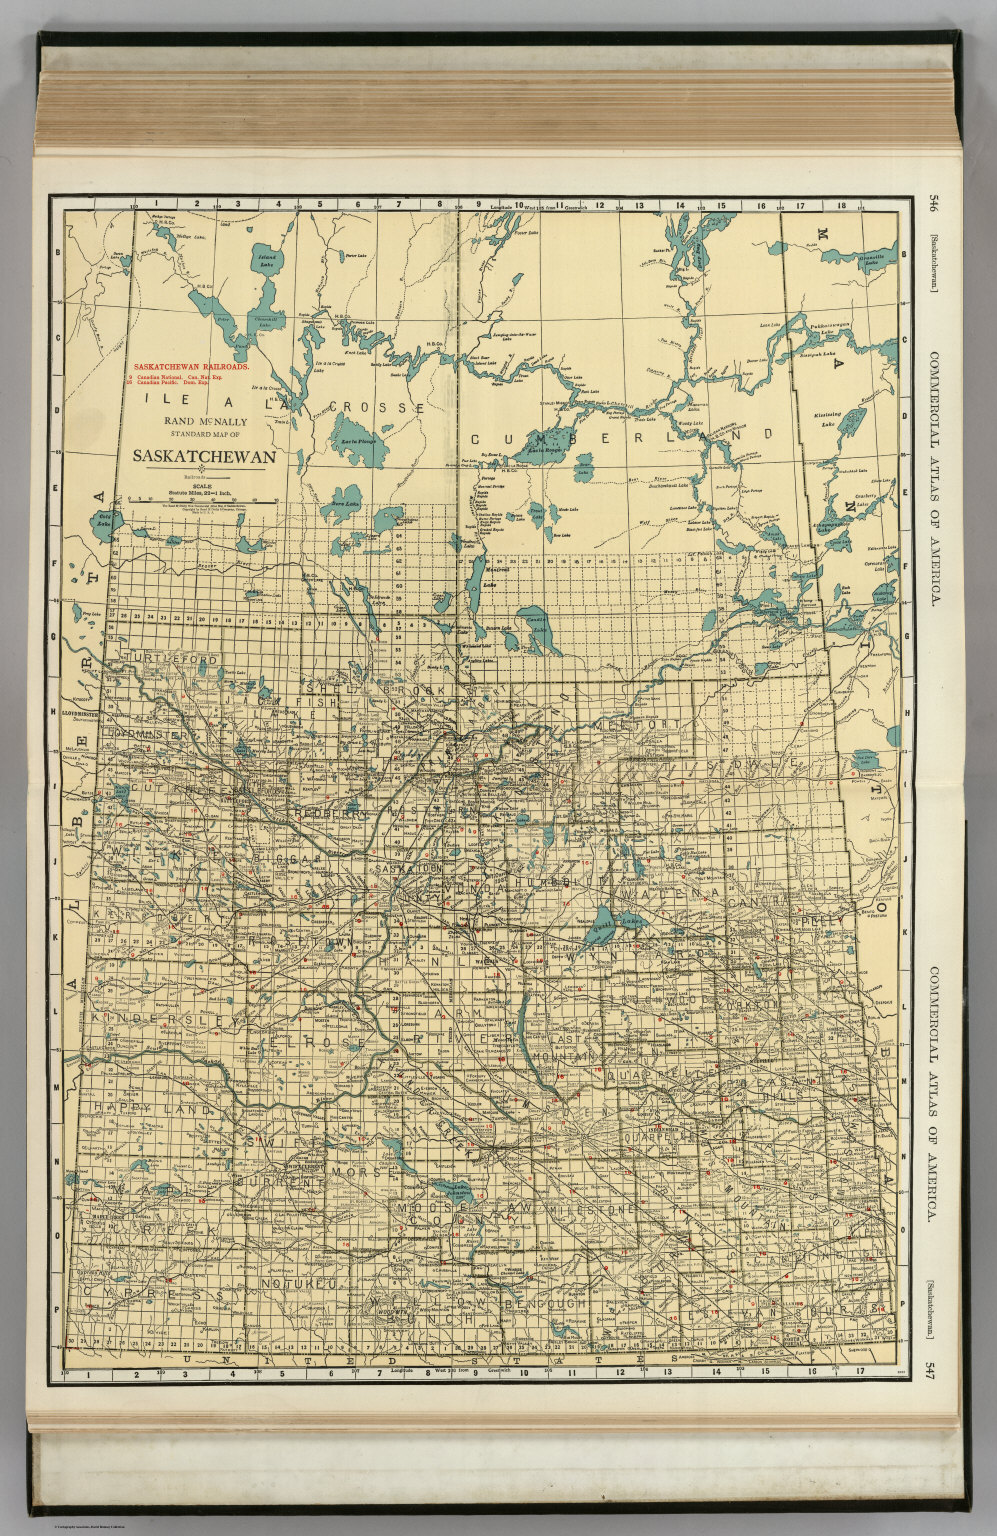 Saskatchewan david rumsey historical map collection saskatchewan gumiabroncs Choice Image